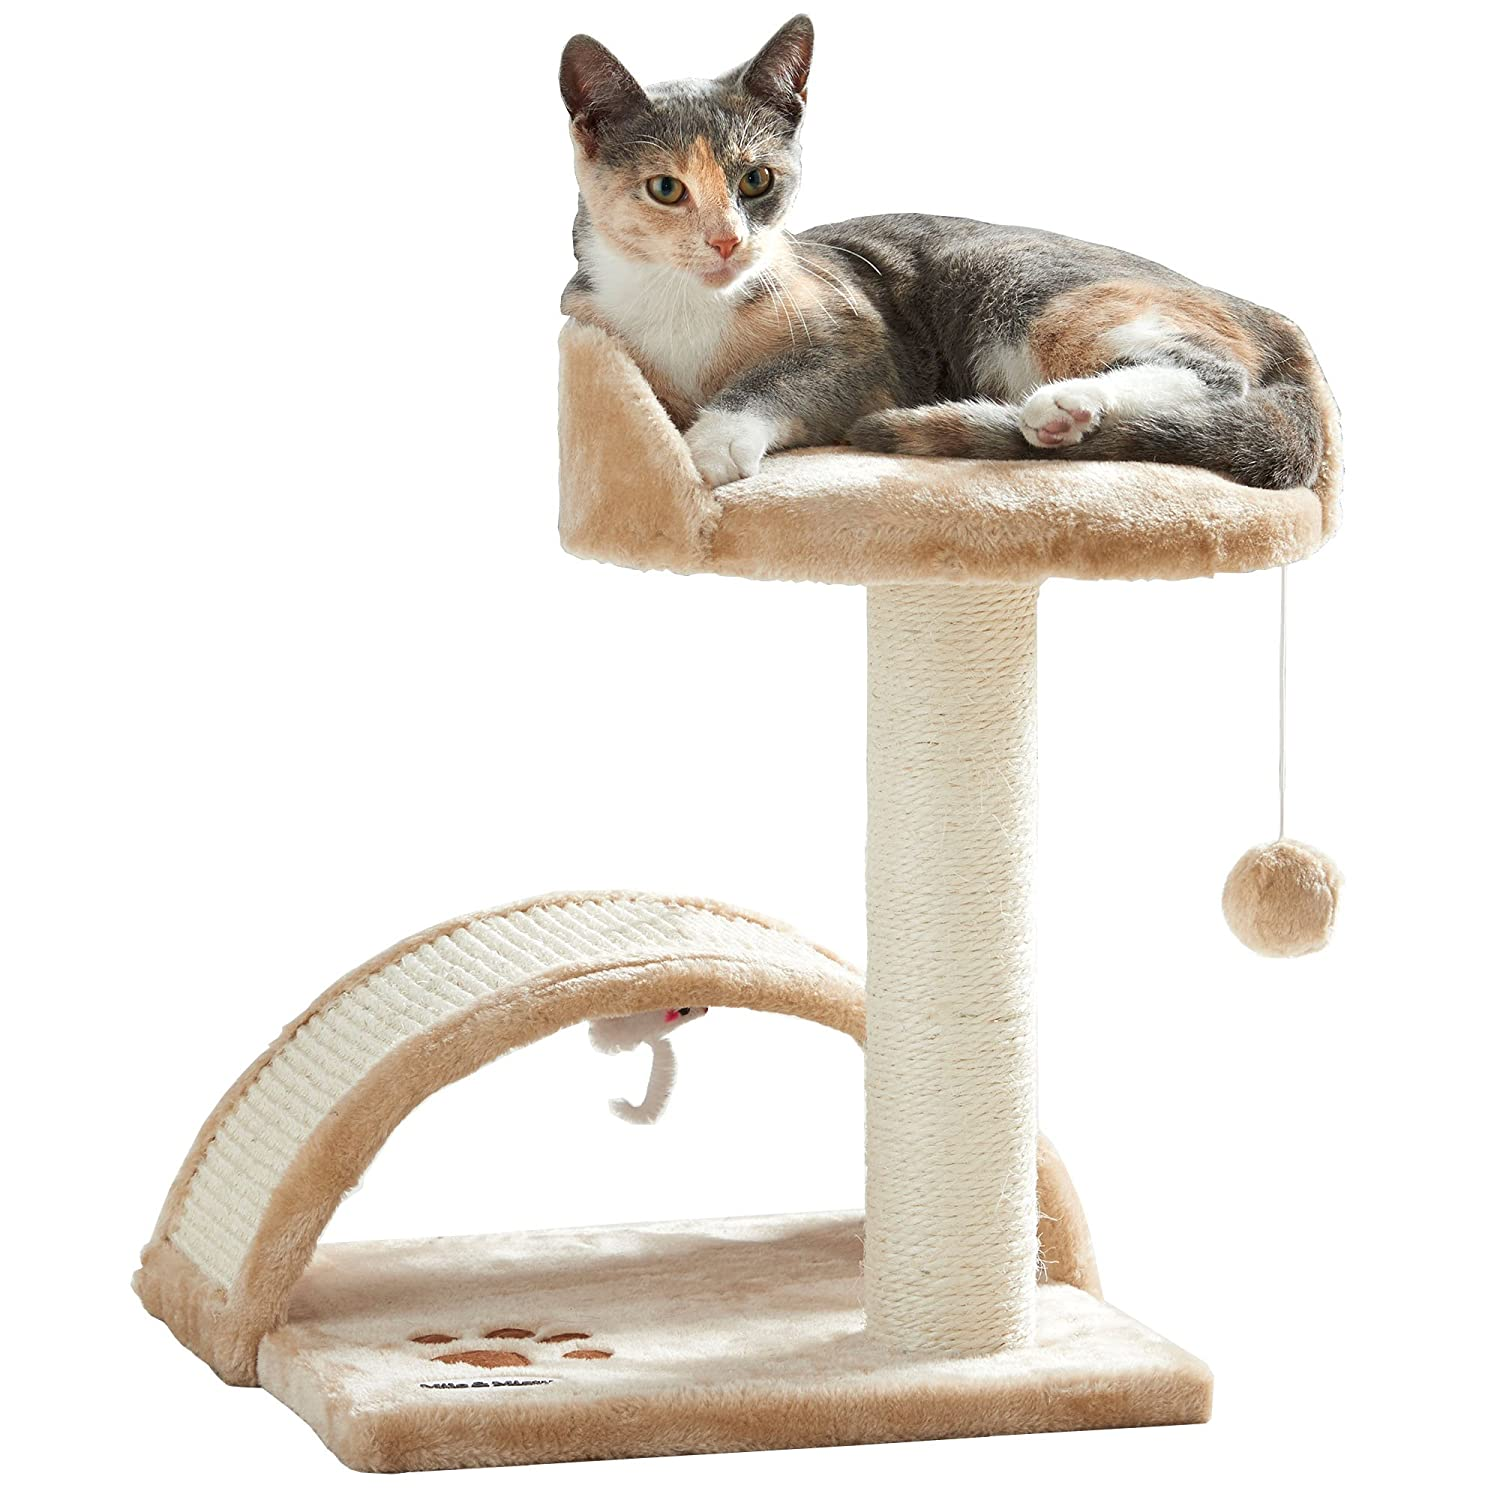 milo u0026 misty cat bed and scratching post activity tree with toys beige amazoncouk pet supplies - Cat Scratching Post